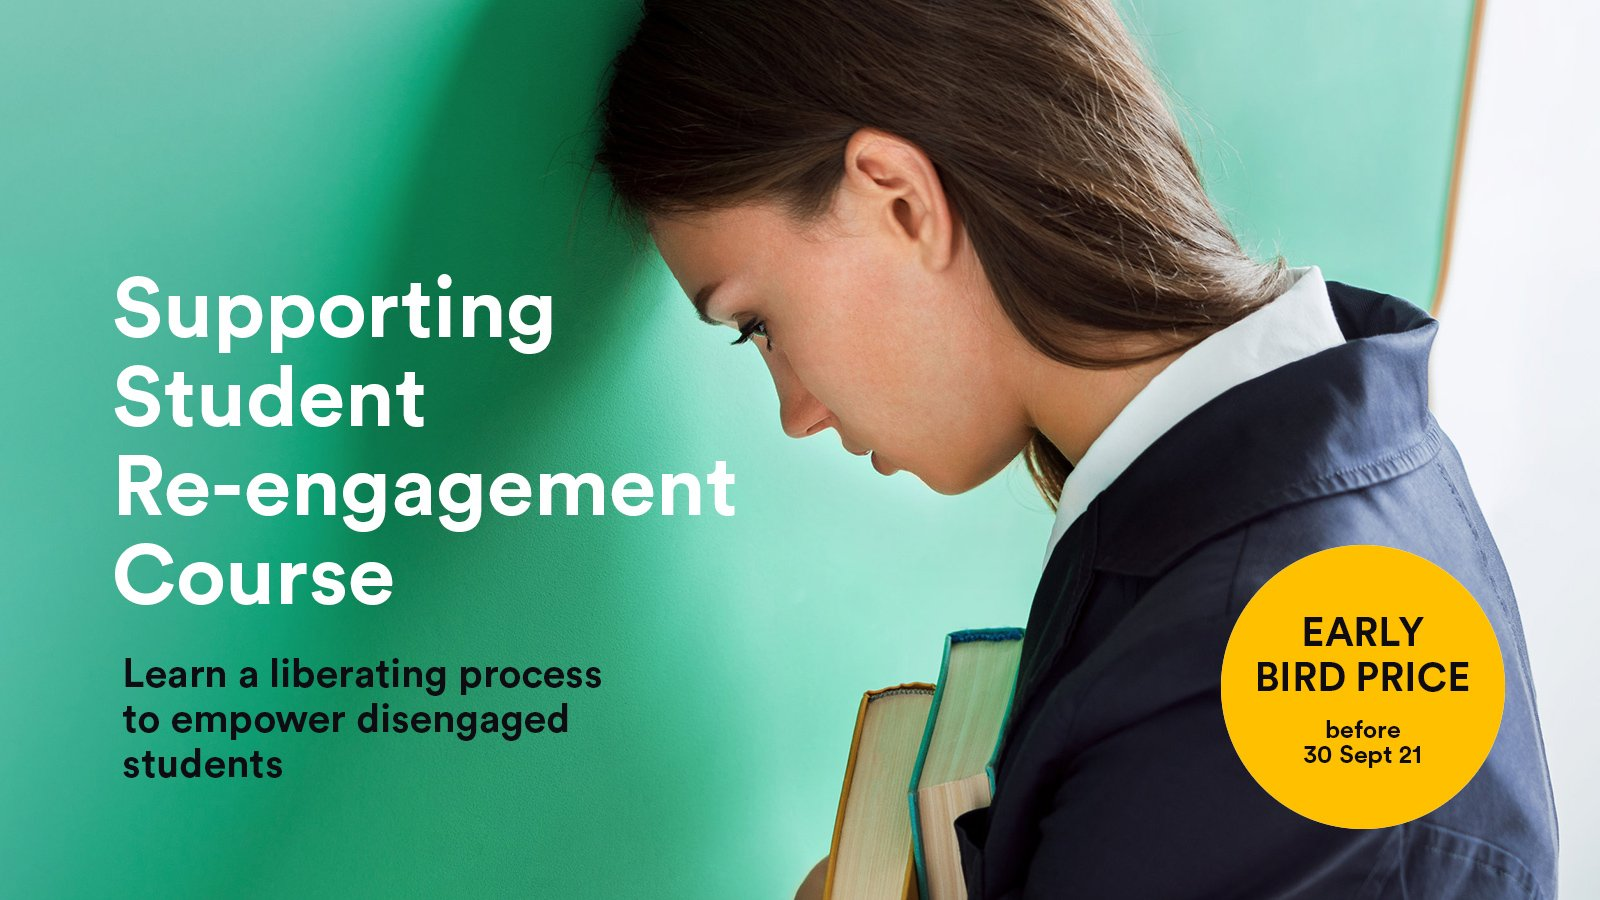 early bird price for Supporting Student Re-engagement